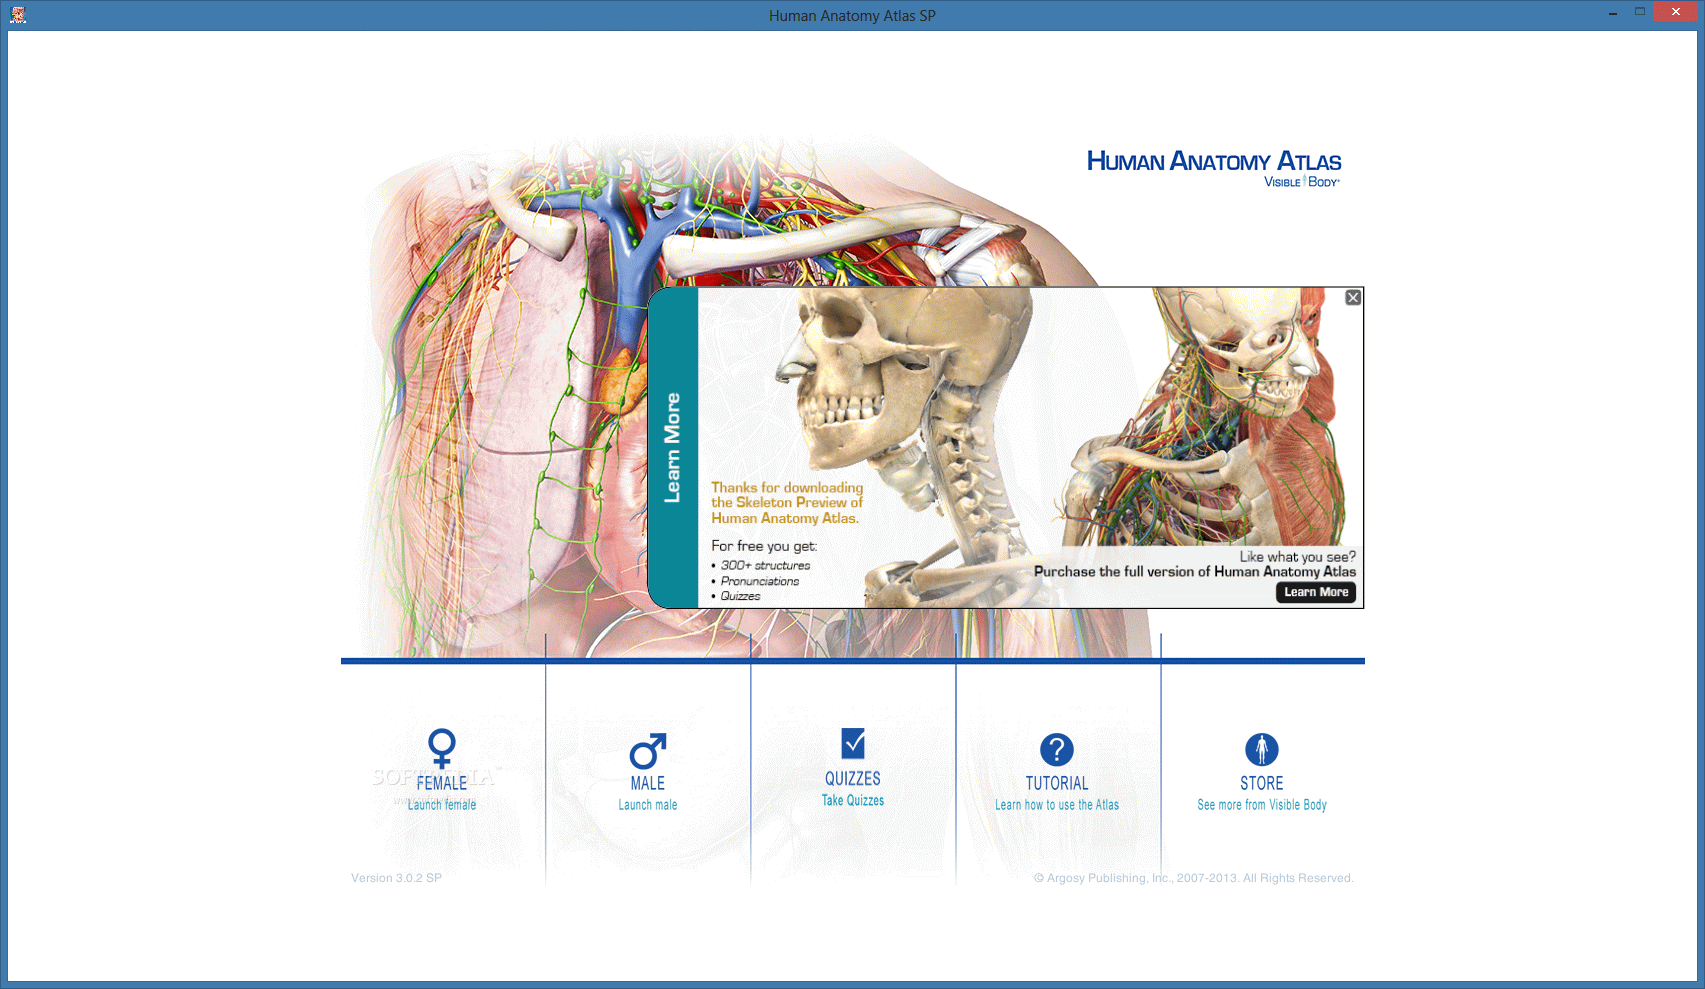 Download Human Anatomy Atlas Sp 20183